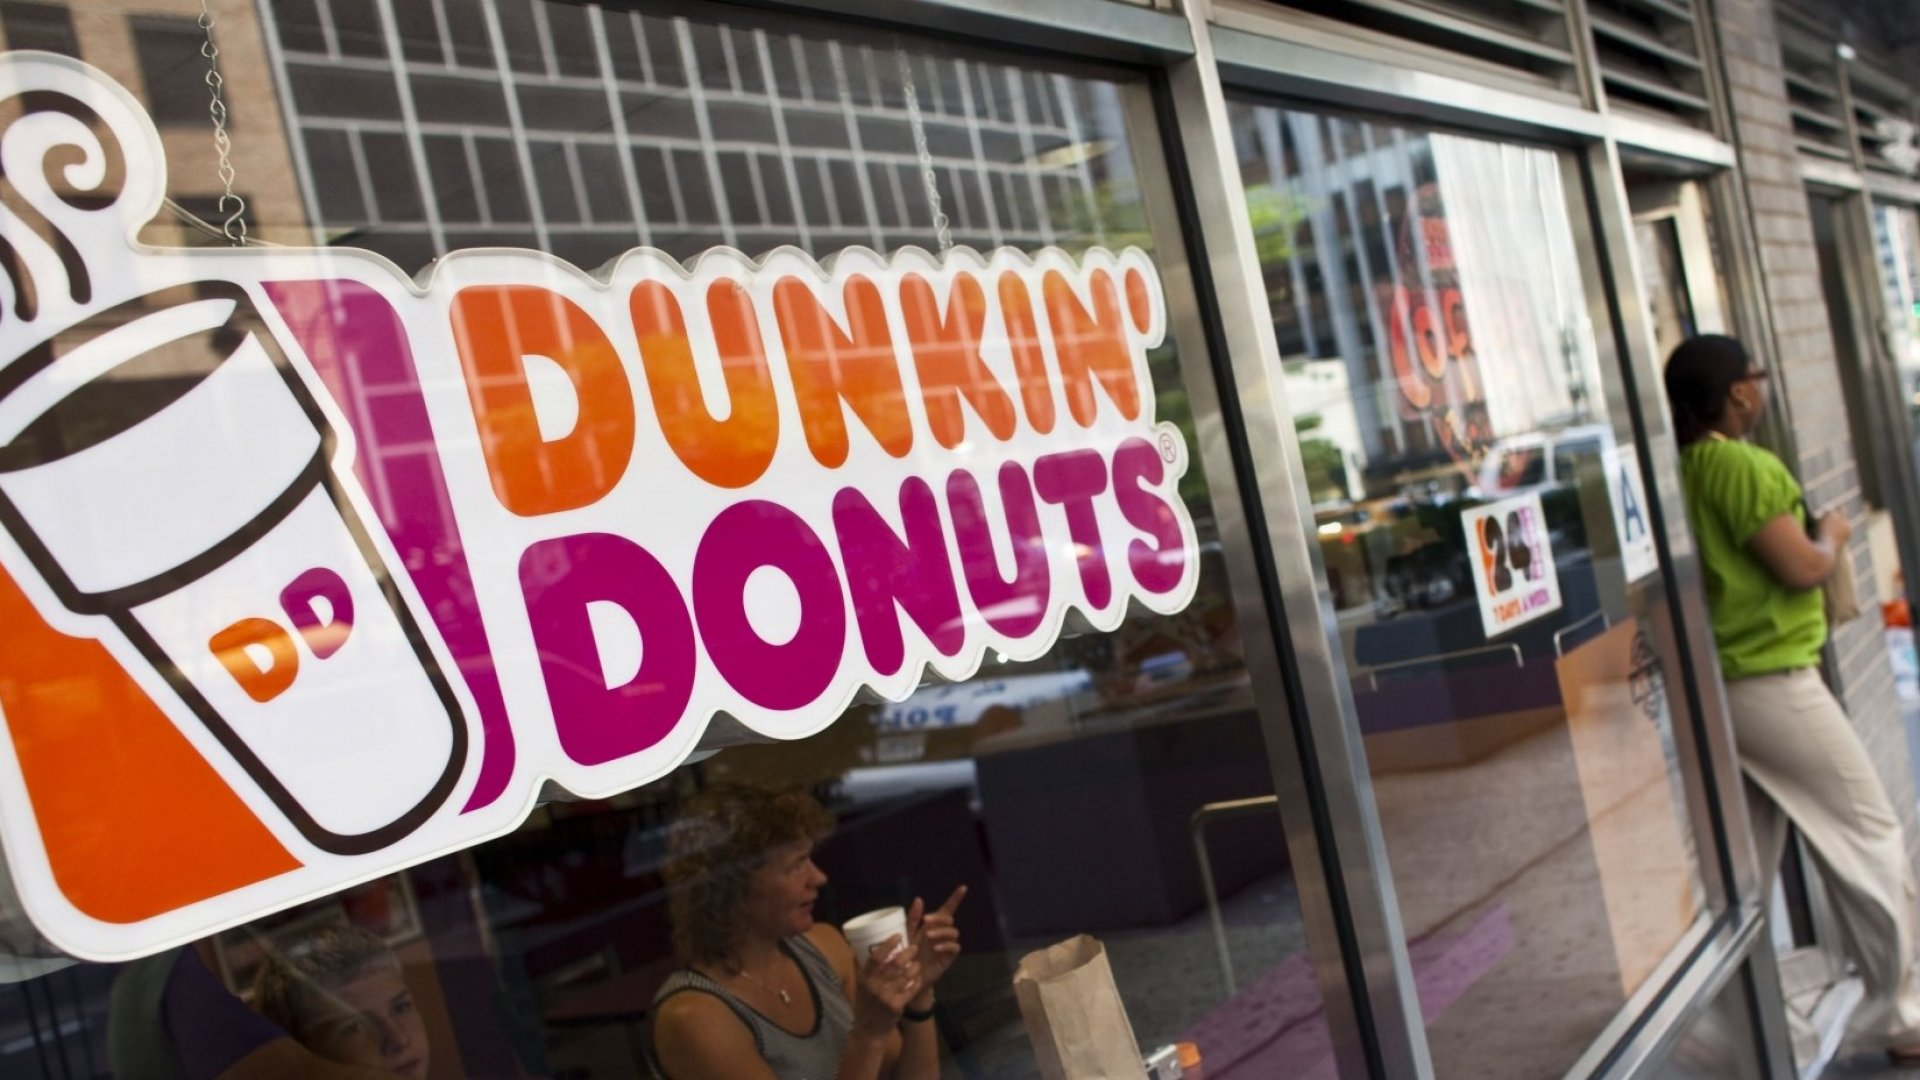 Experience Matters, Even When Selling Products. Just Ask Apple, Warby Parker, and Dunkin' Donuts